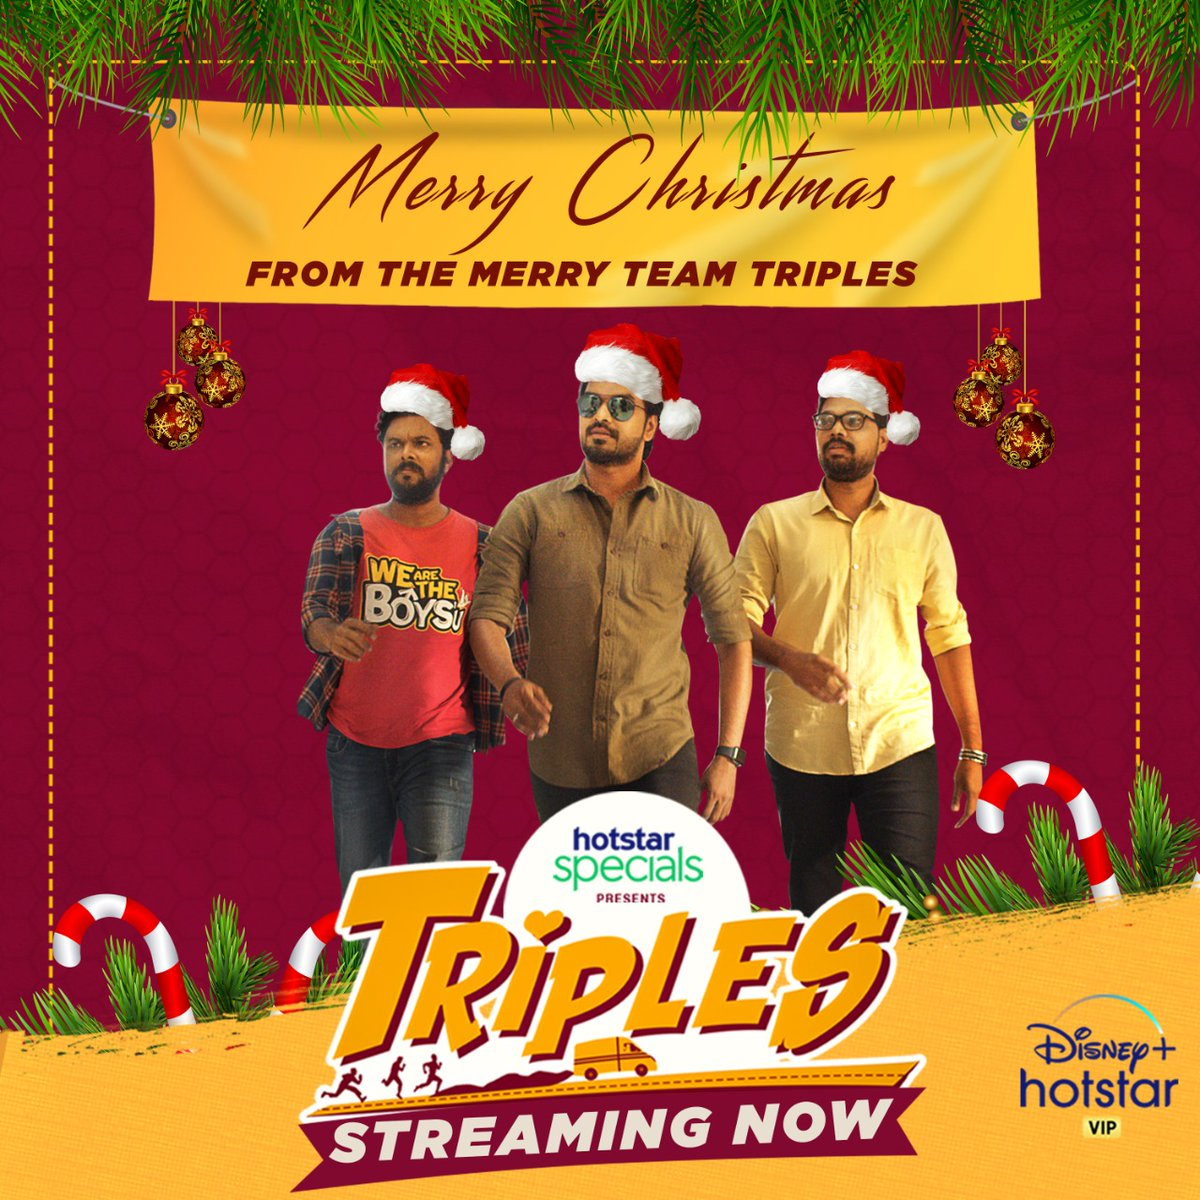 Don't miss the fun-filled comedy series Triples only on @DisneyplushsVIP 👍  #triples #triplesthefun